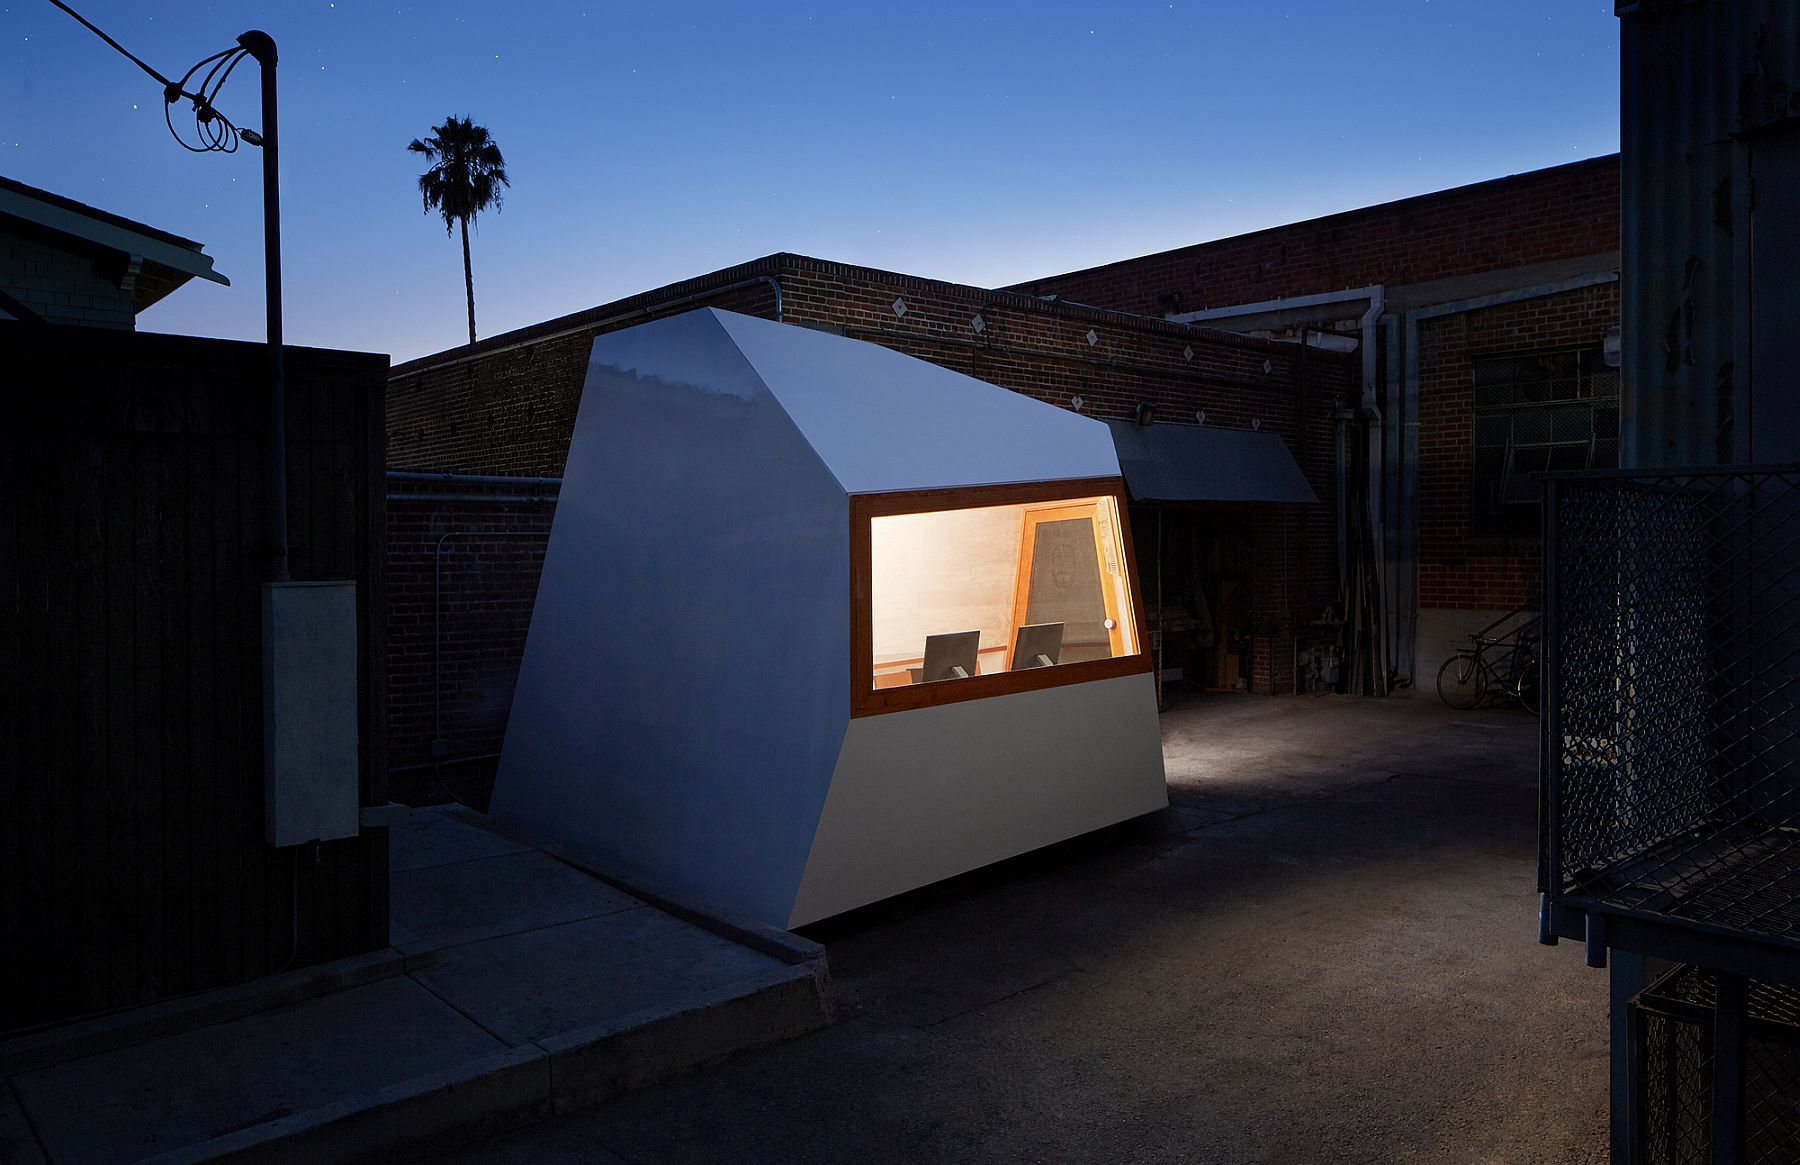 Small, modular structure on wheels can be moved anywhere with ease